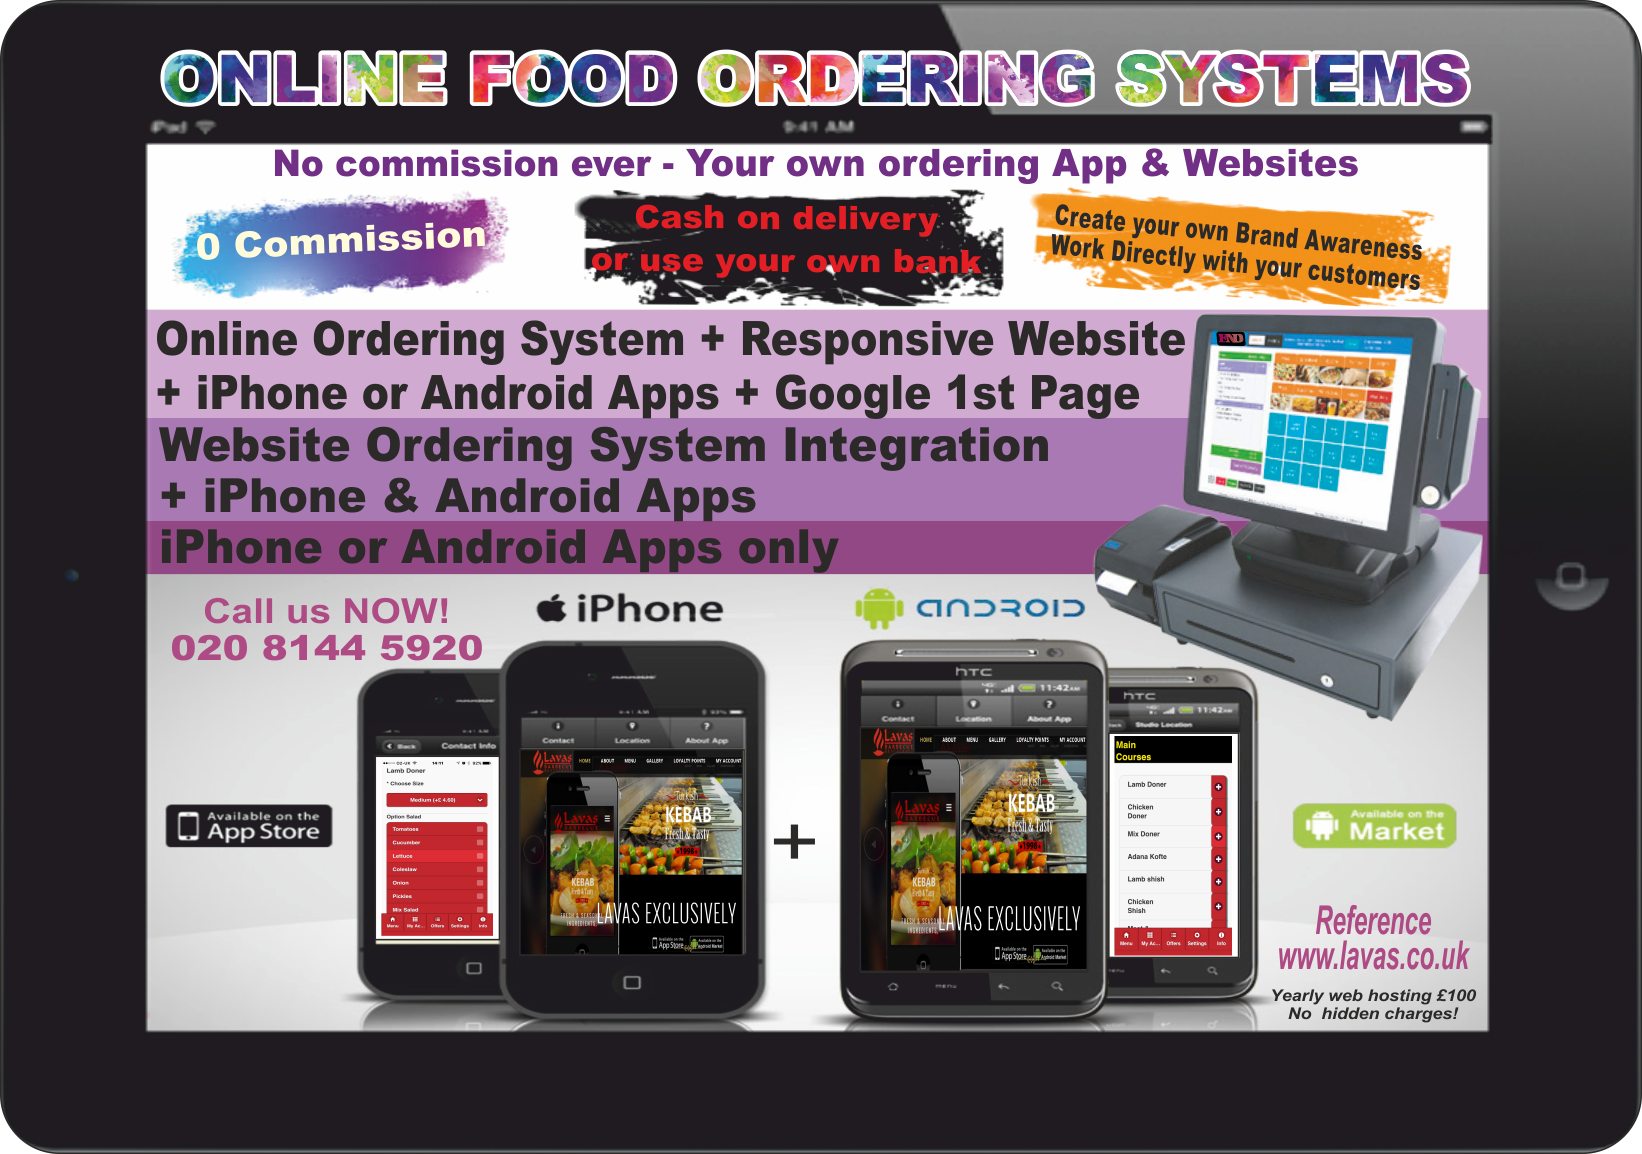 Online food Ordering System for Takeaways, Restaurants, Sandwich Shops and Cafes